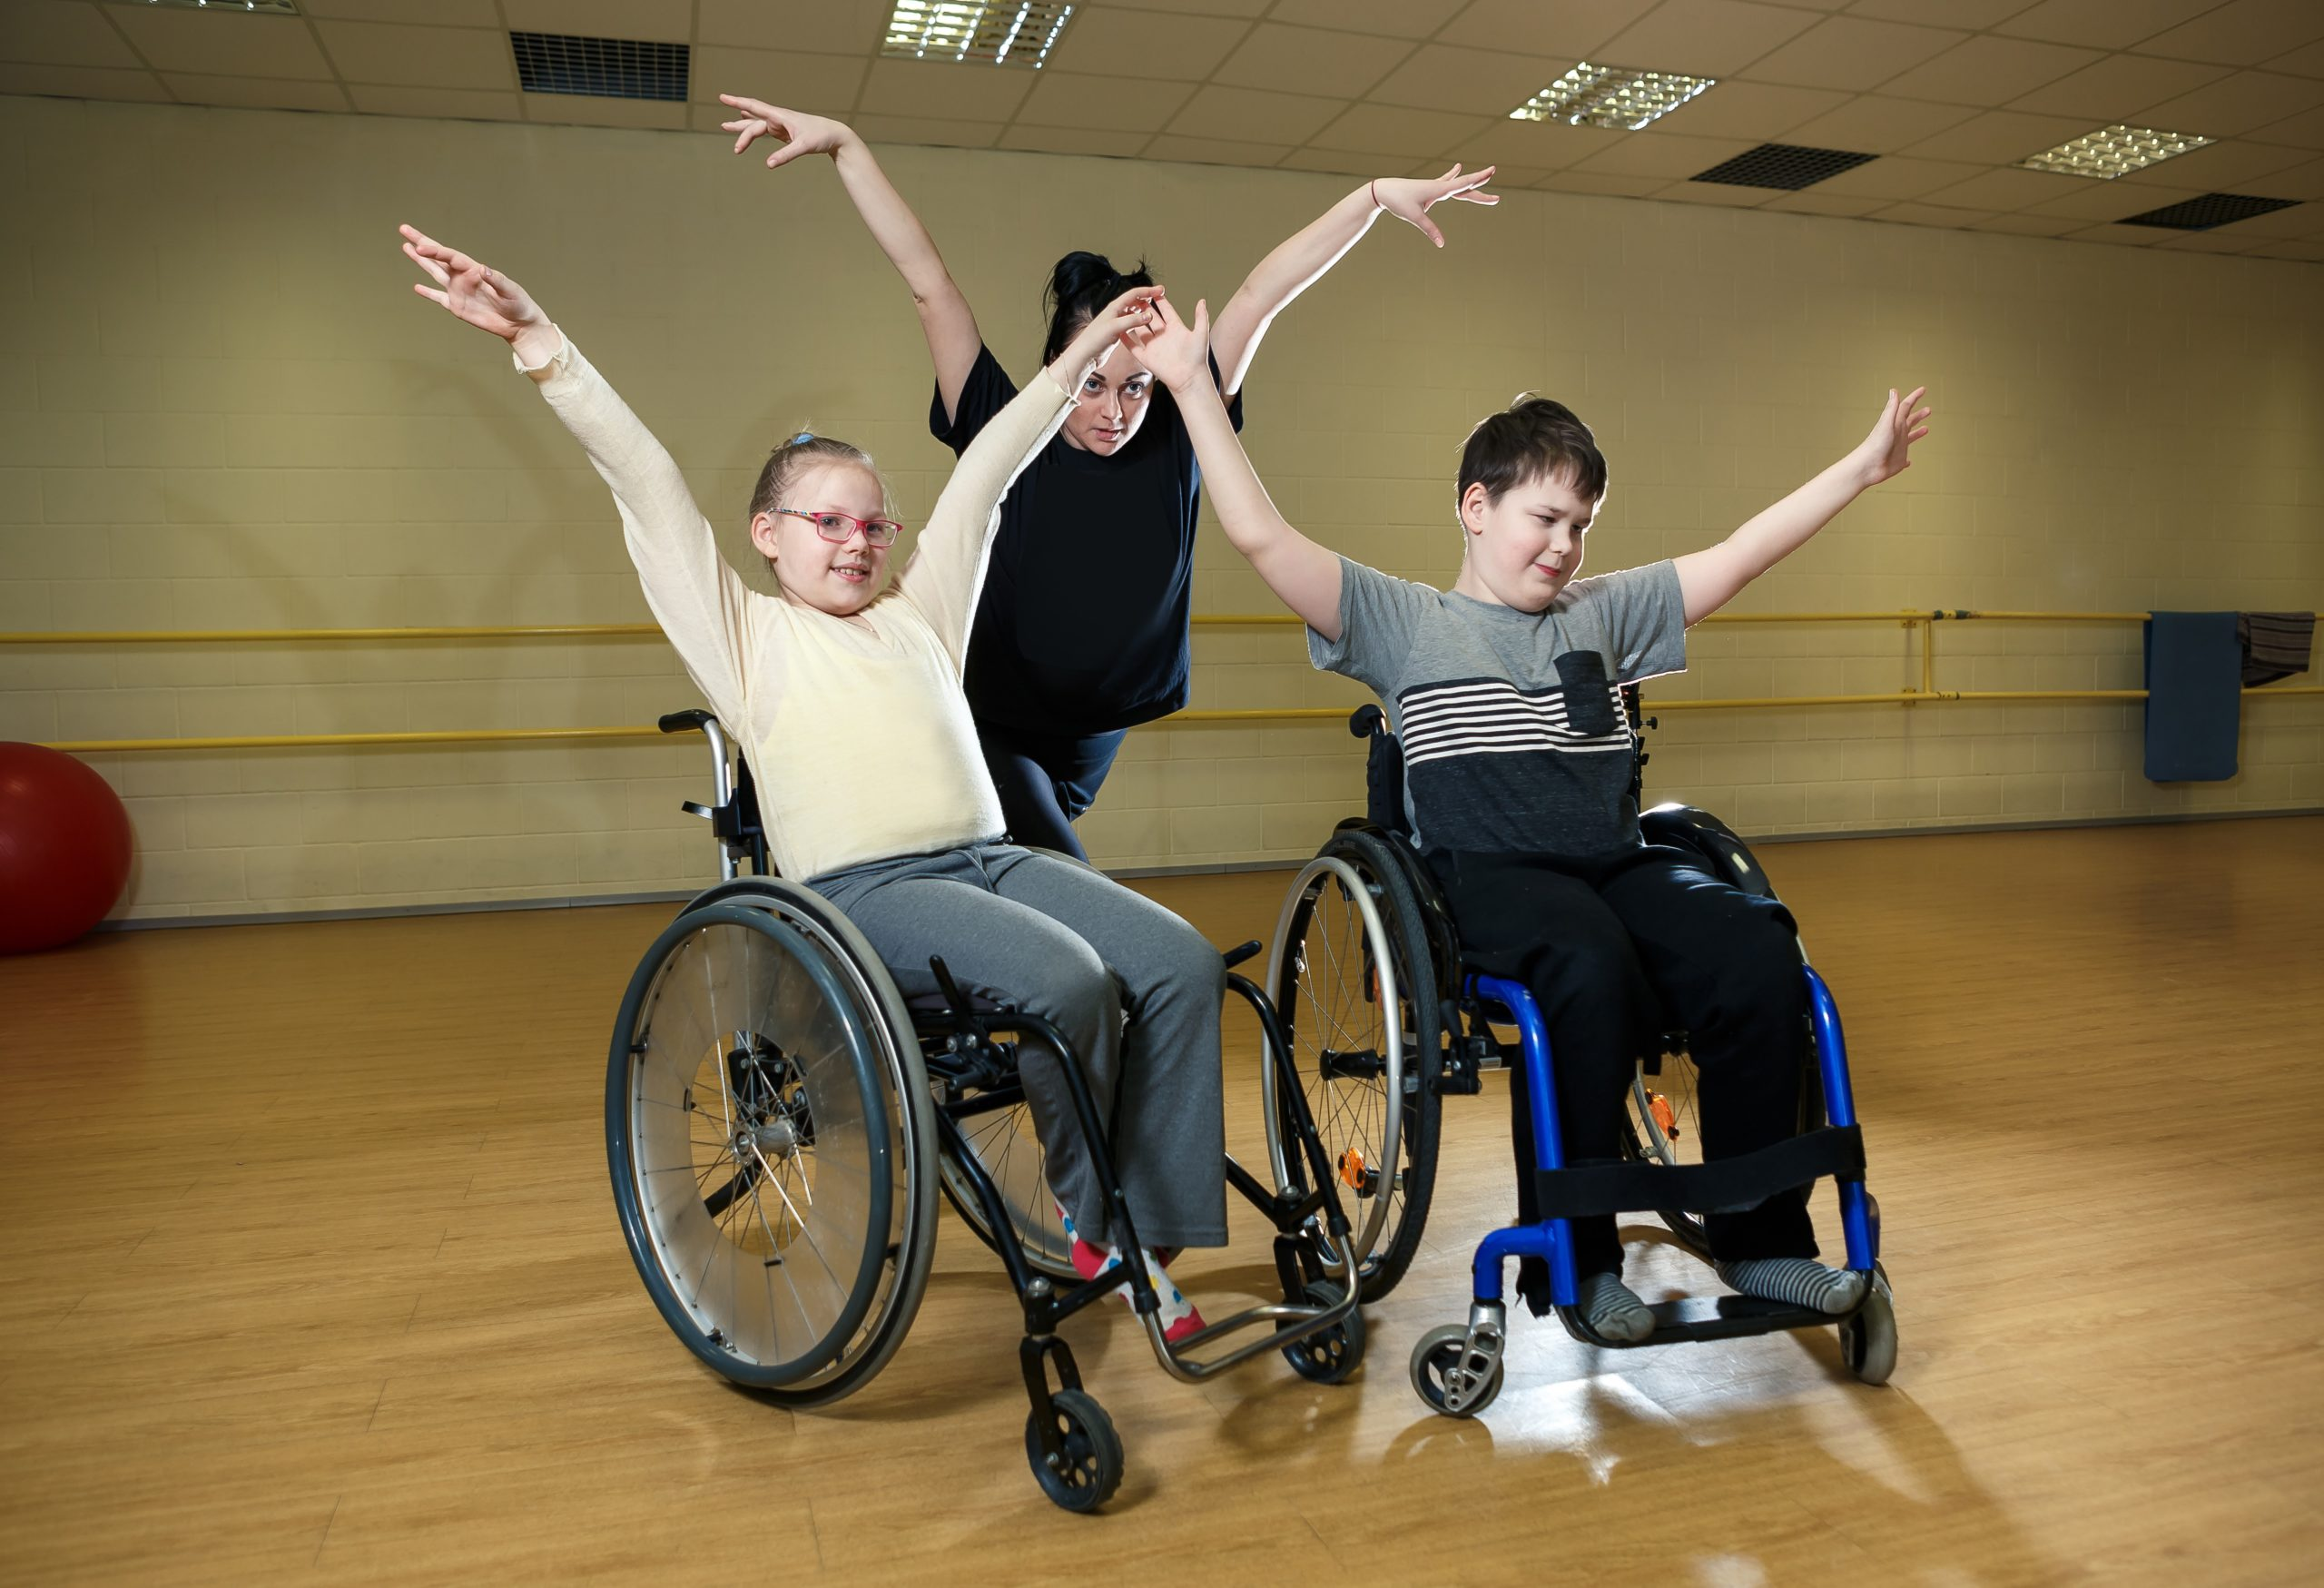 People on wheelchair exercising